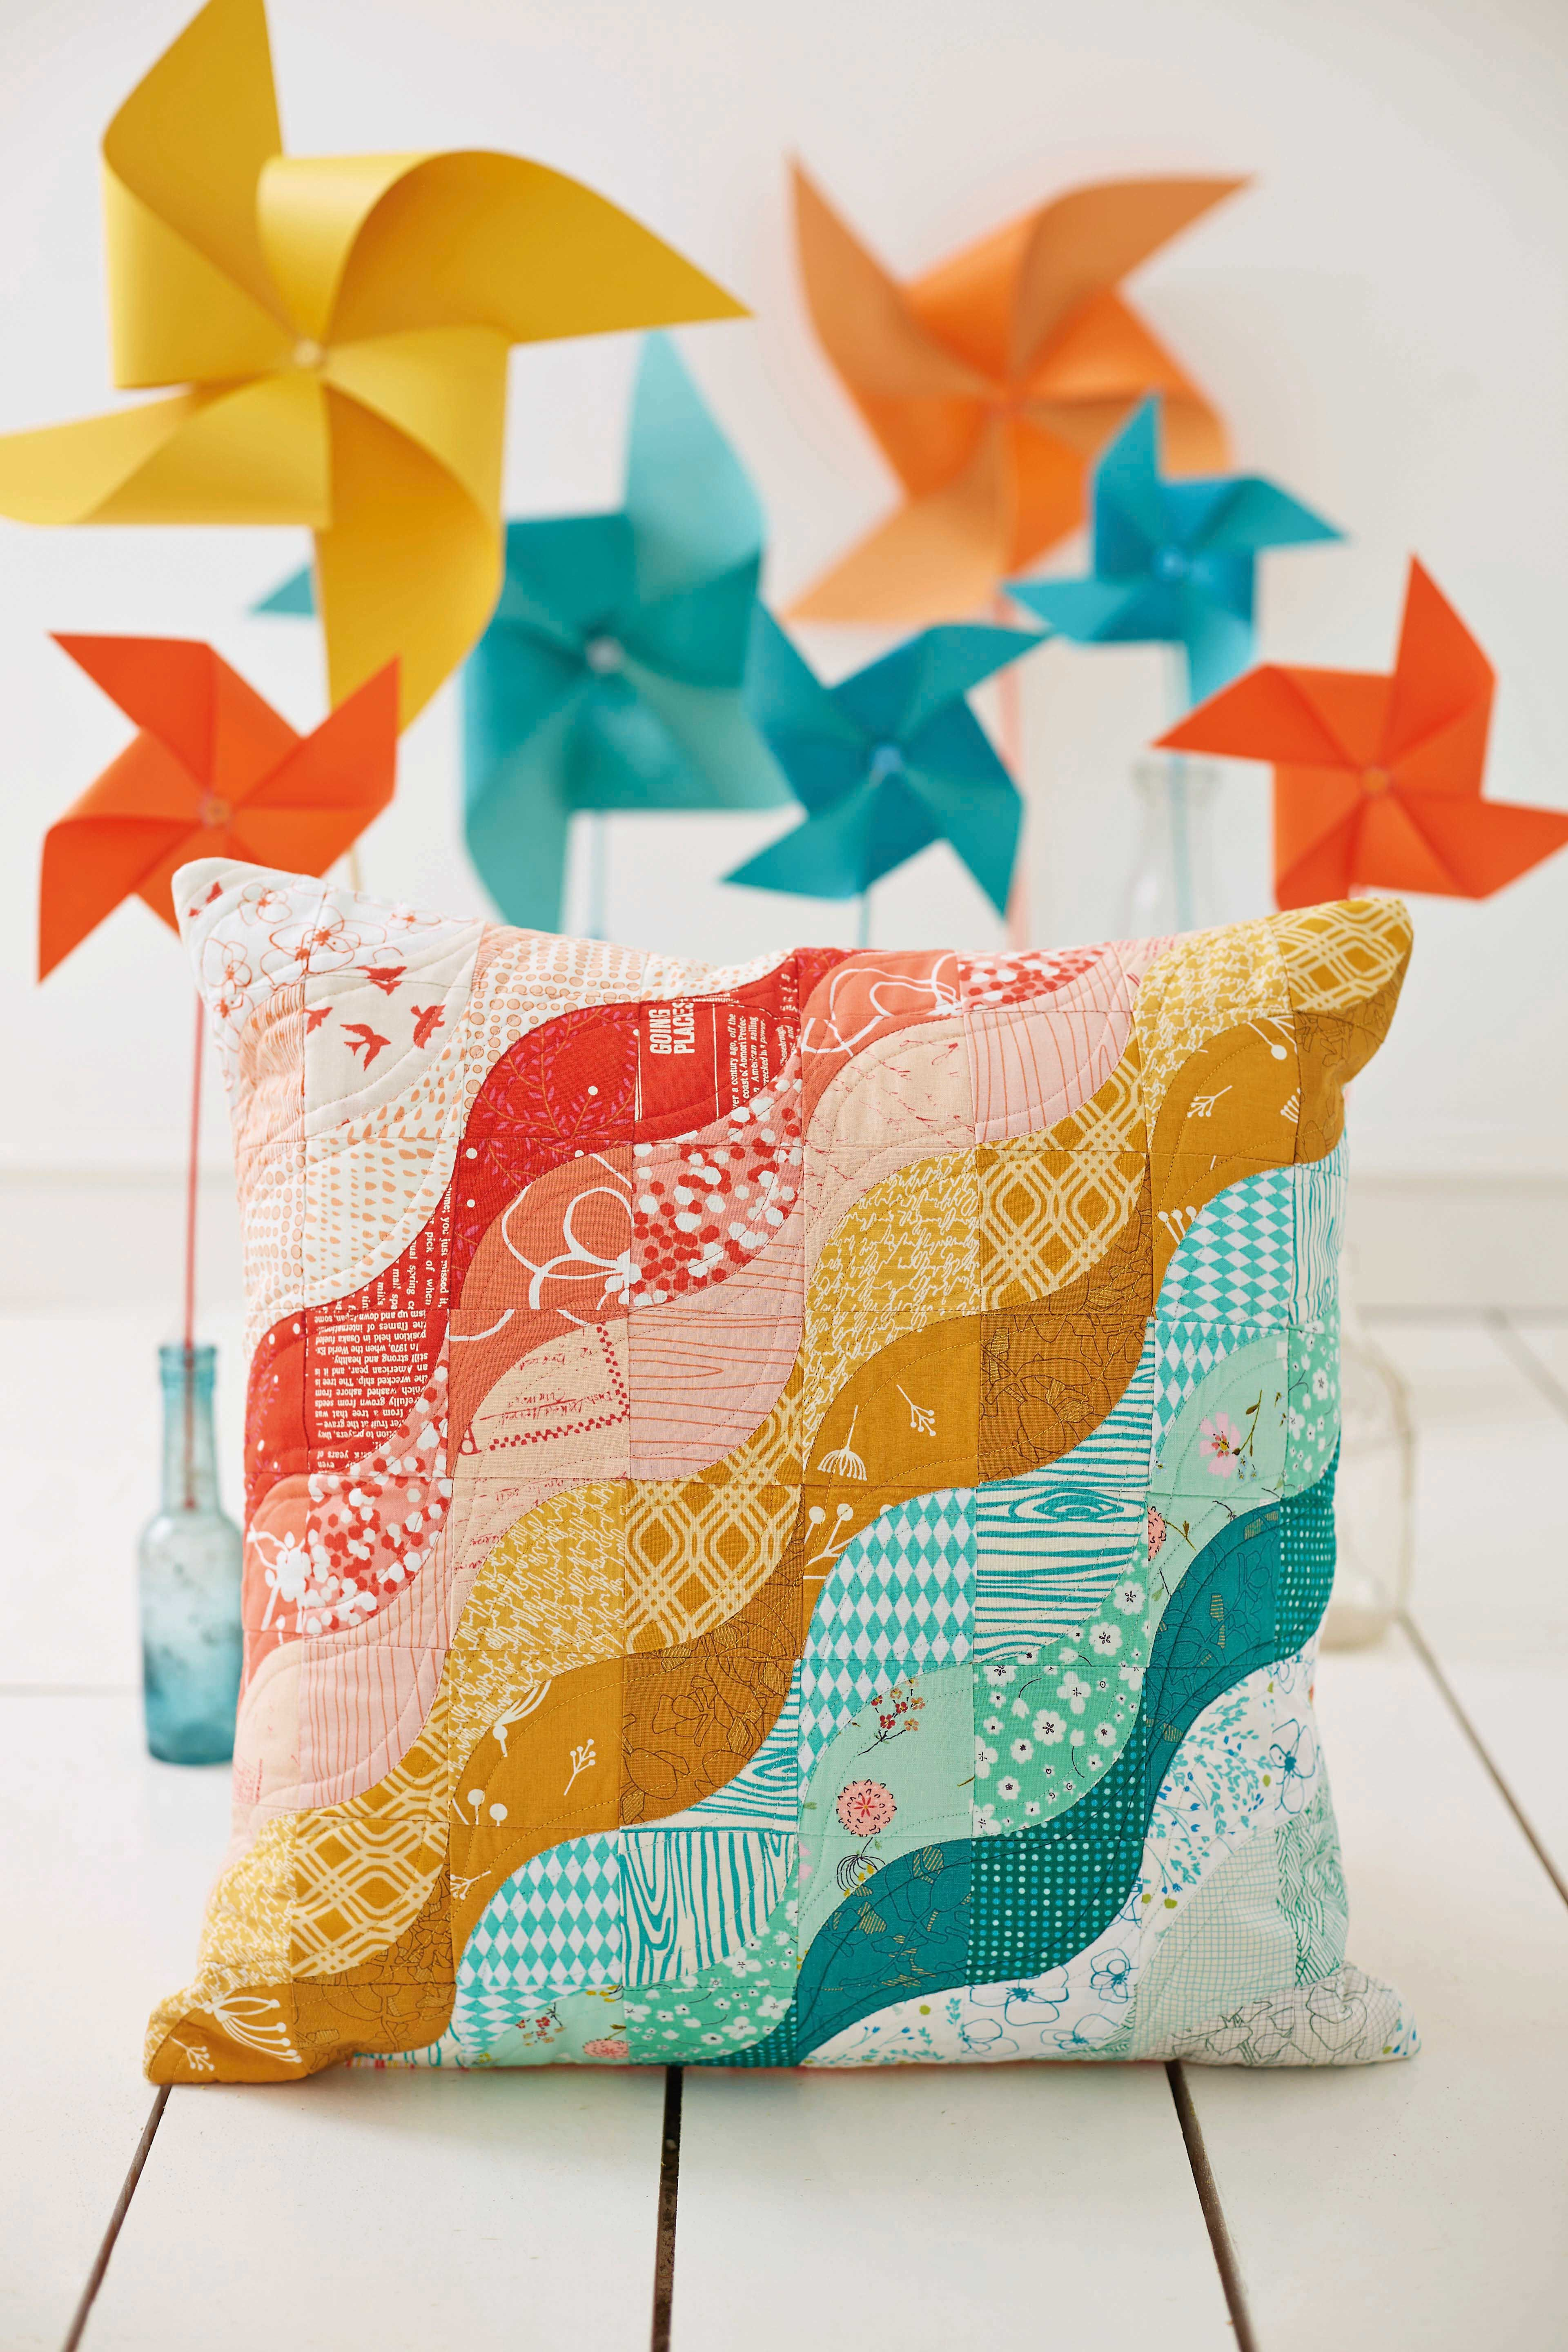 Rainbow Ripple cushion by Julianna Gasiorowska for Love Patchwork & Quilting magazine issue 12